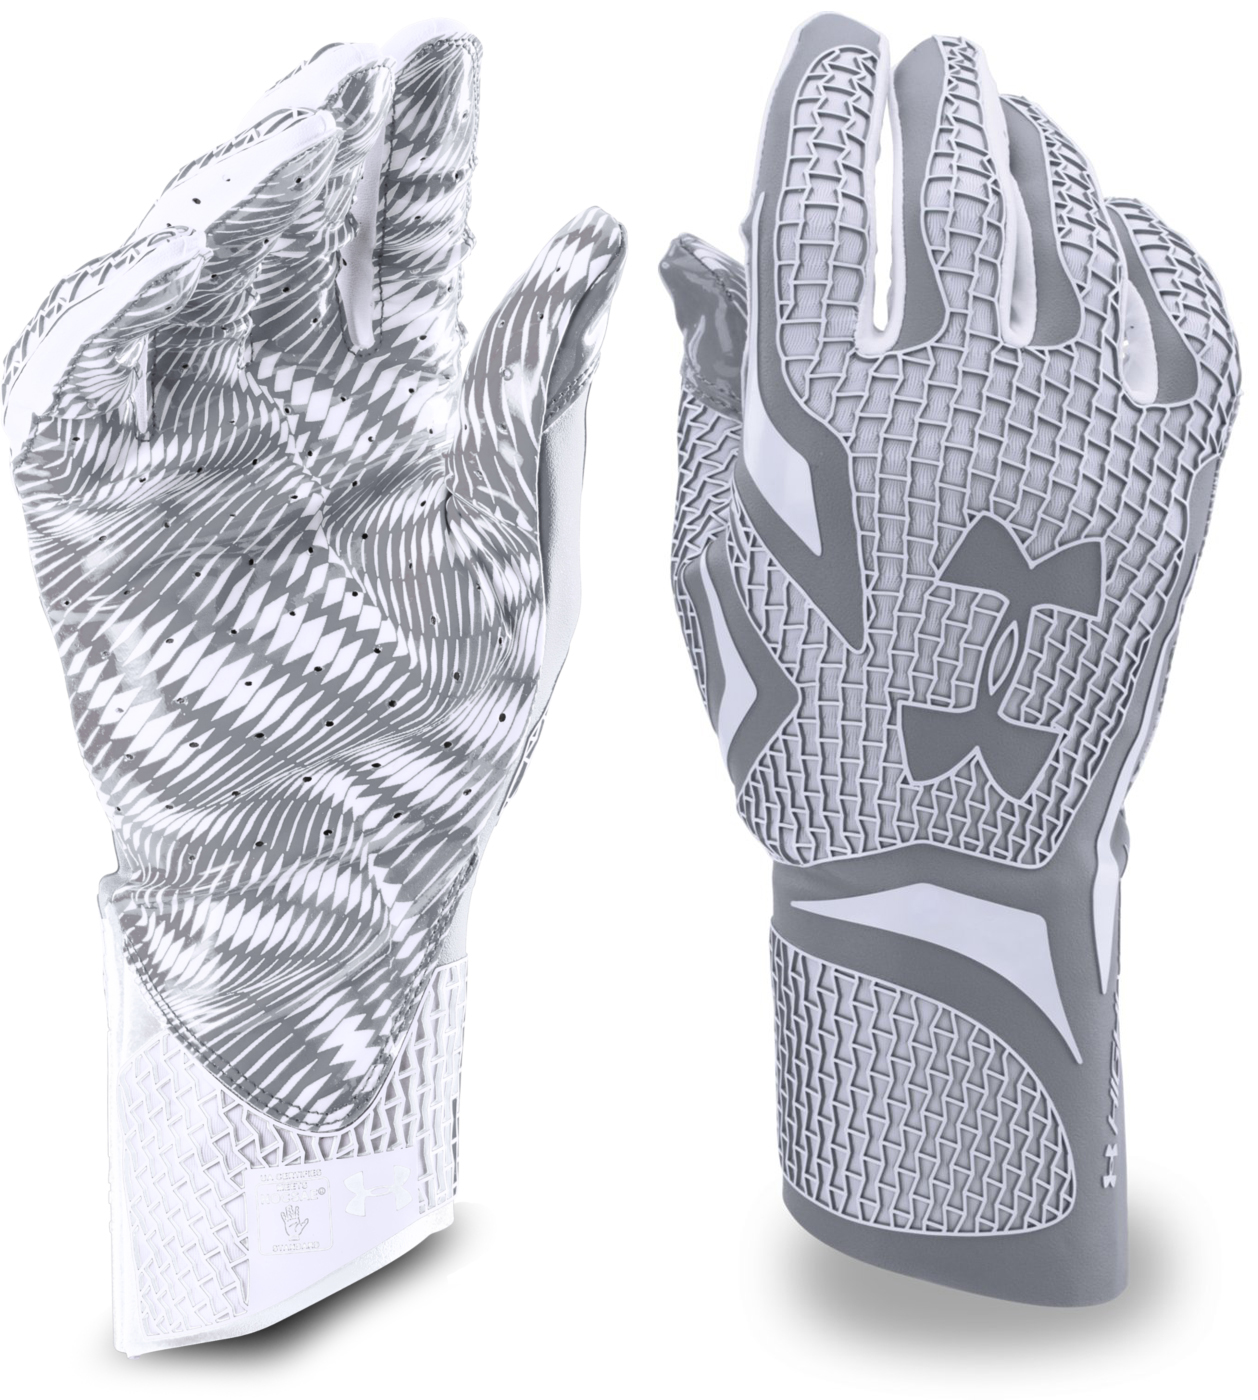 custom under armour football gloves